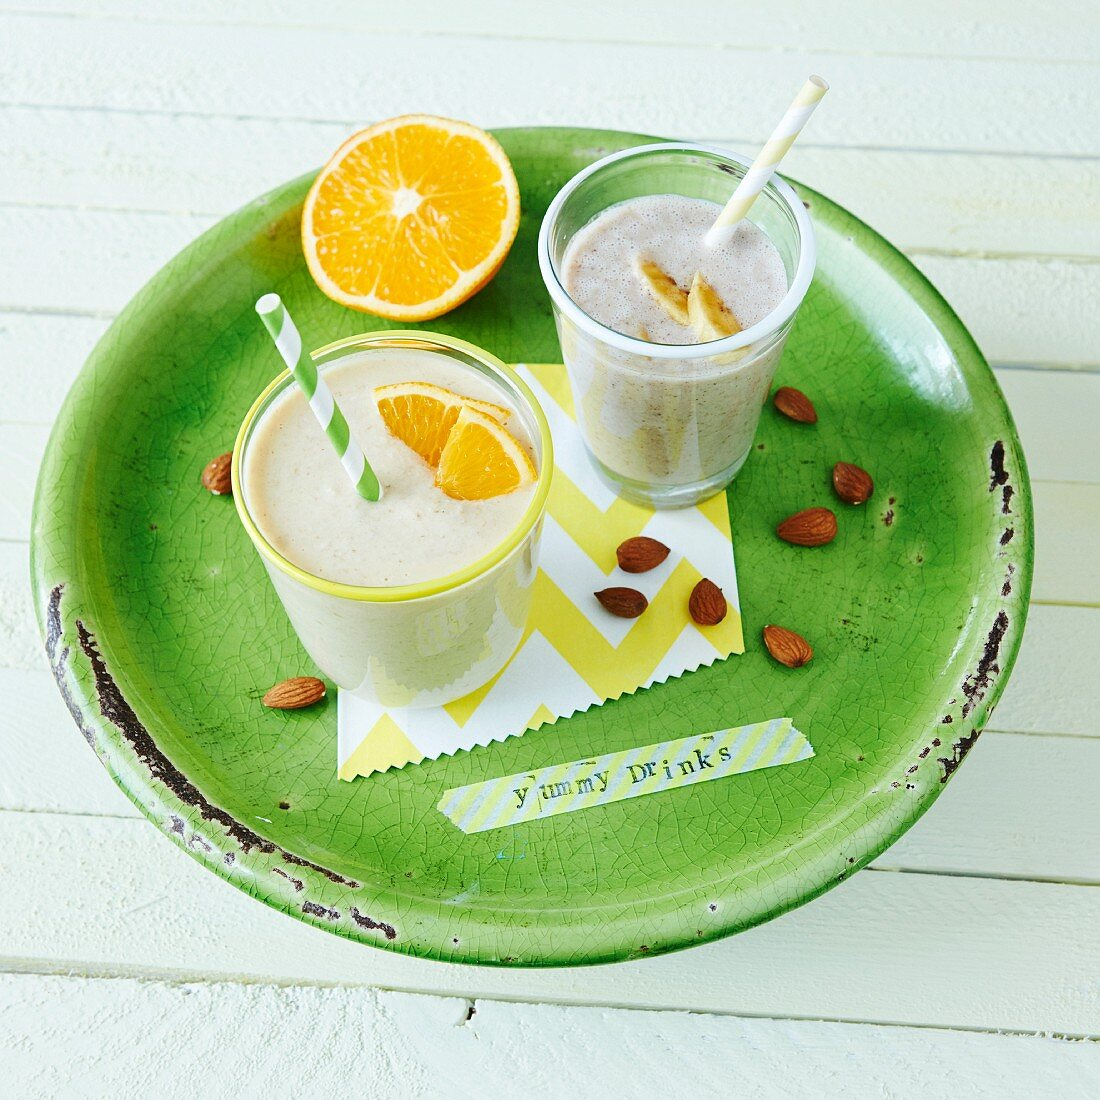 Almond breakfast smoothies with banana and orange